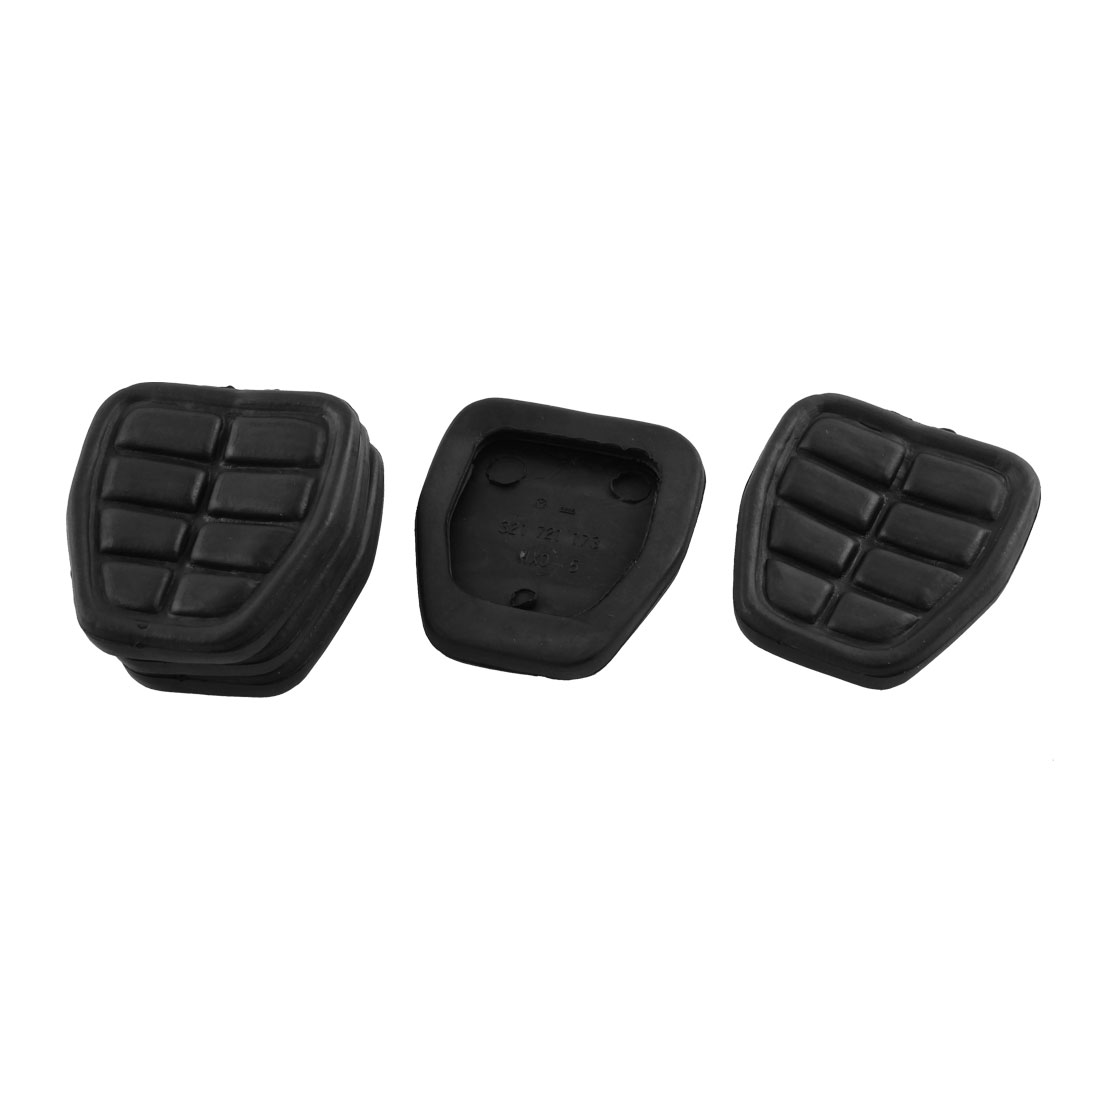 Clutch Brake Pedal Pad Rubber Set 321721173 5 Pcs for Audi 80